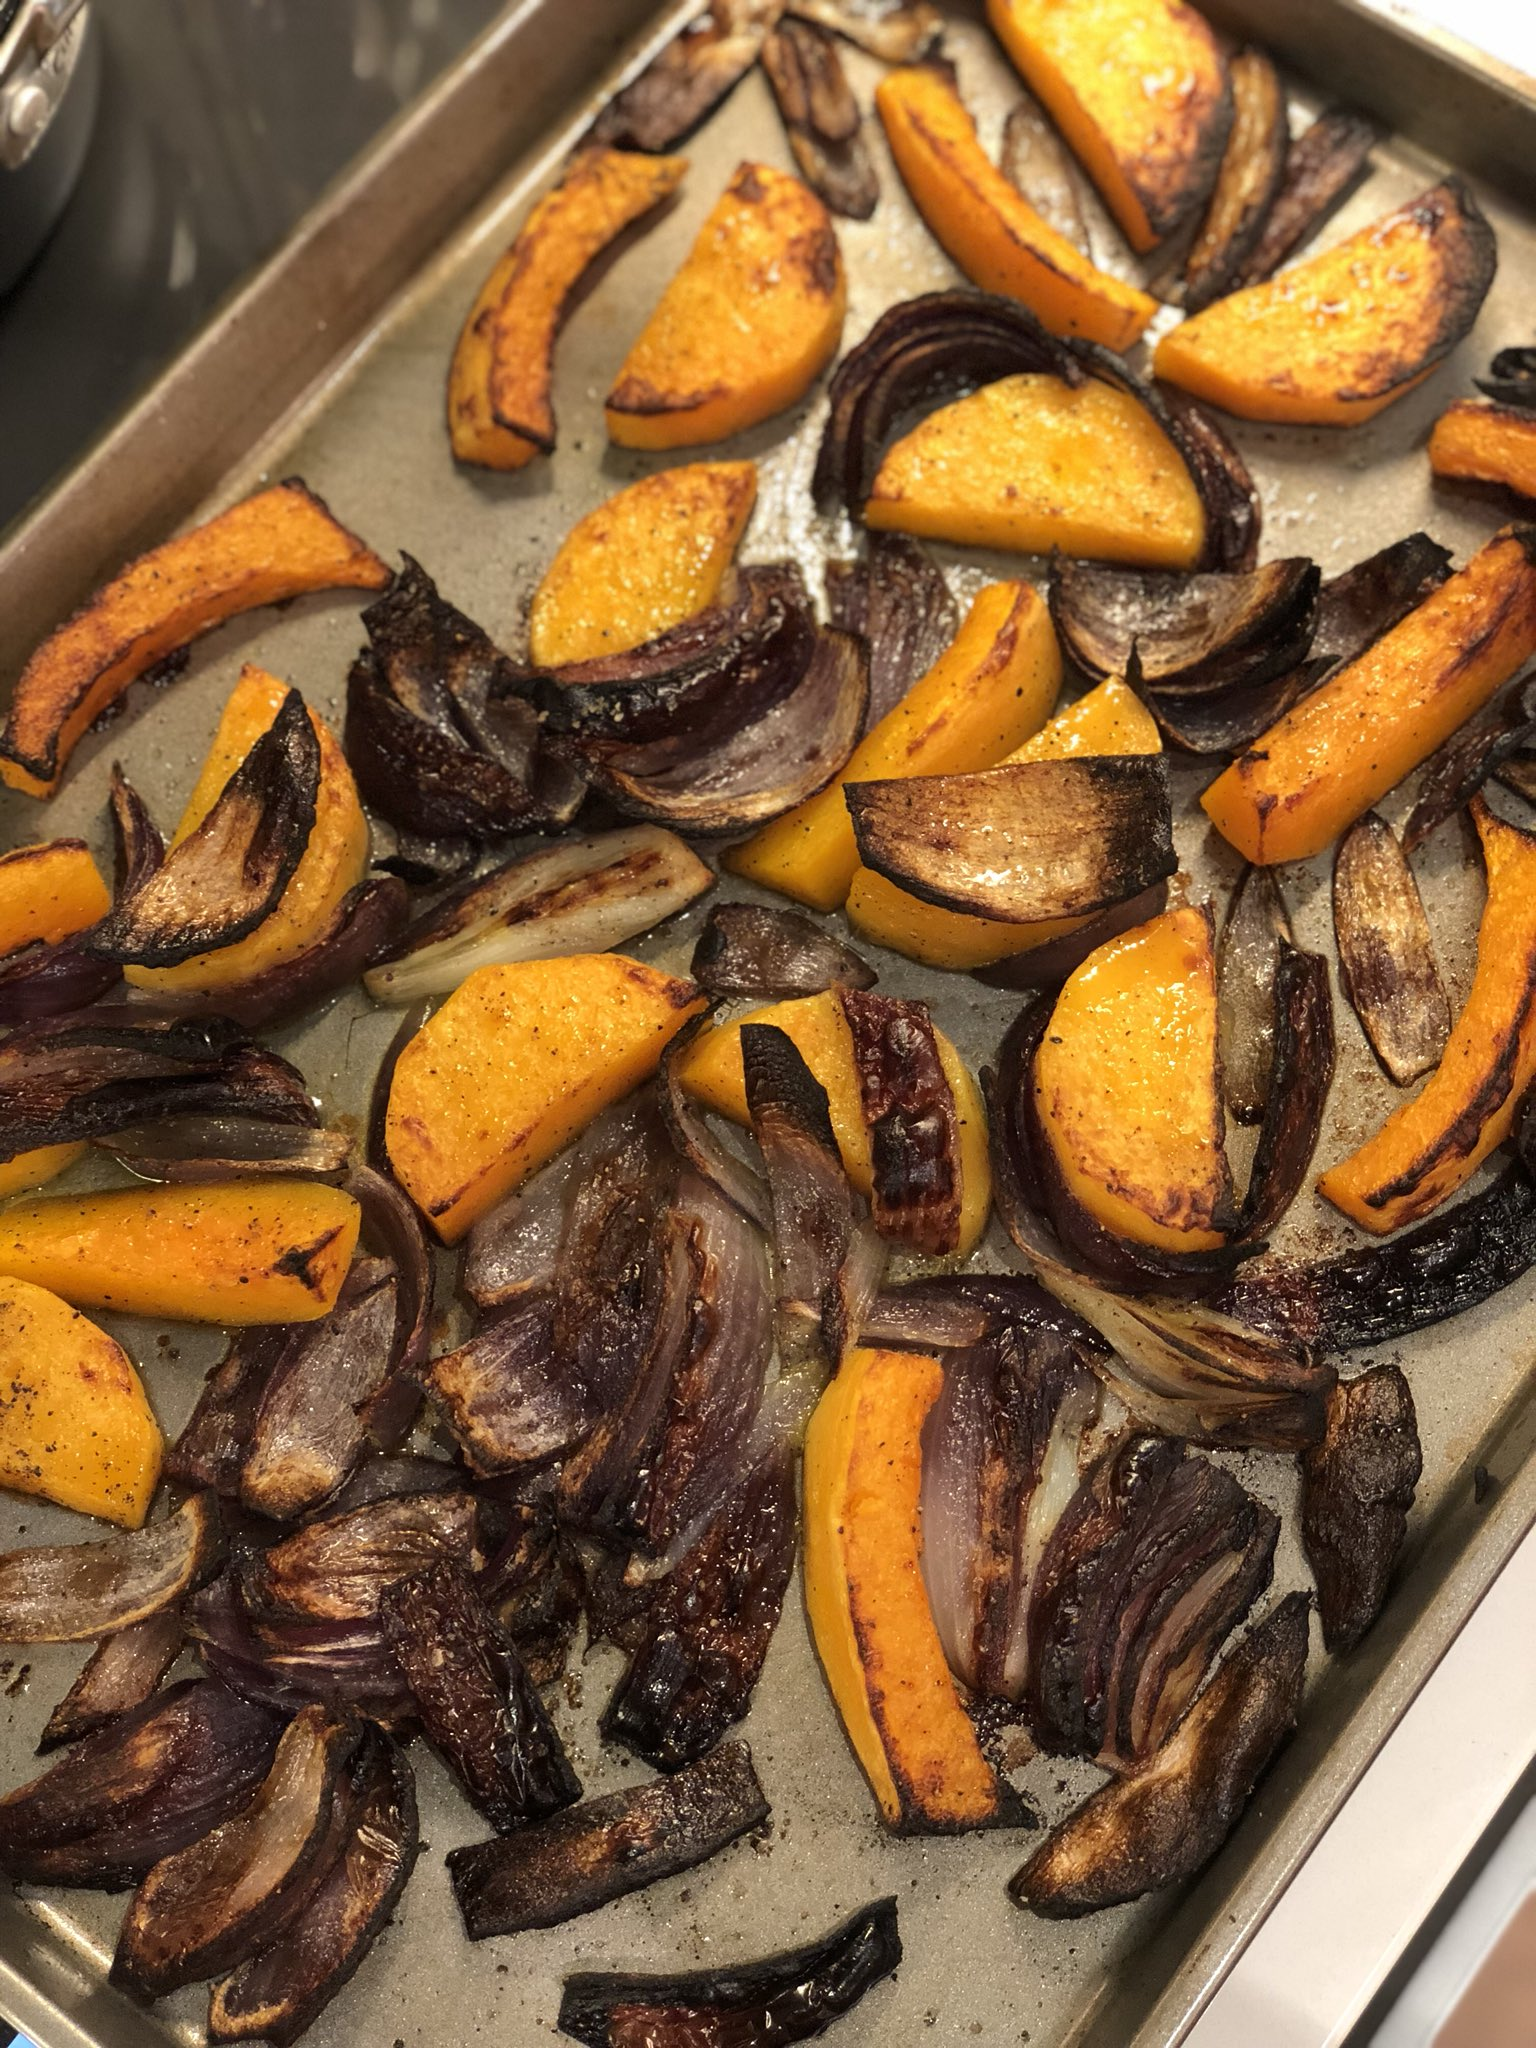 you picked sweet potatoes so i went with squash https://t.co/pMIxBMflJa